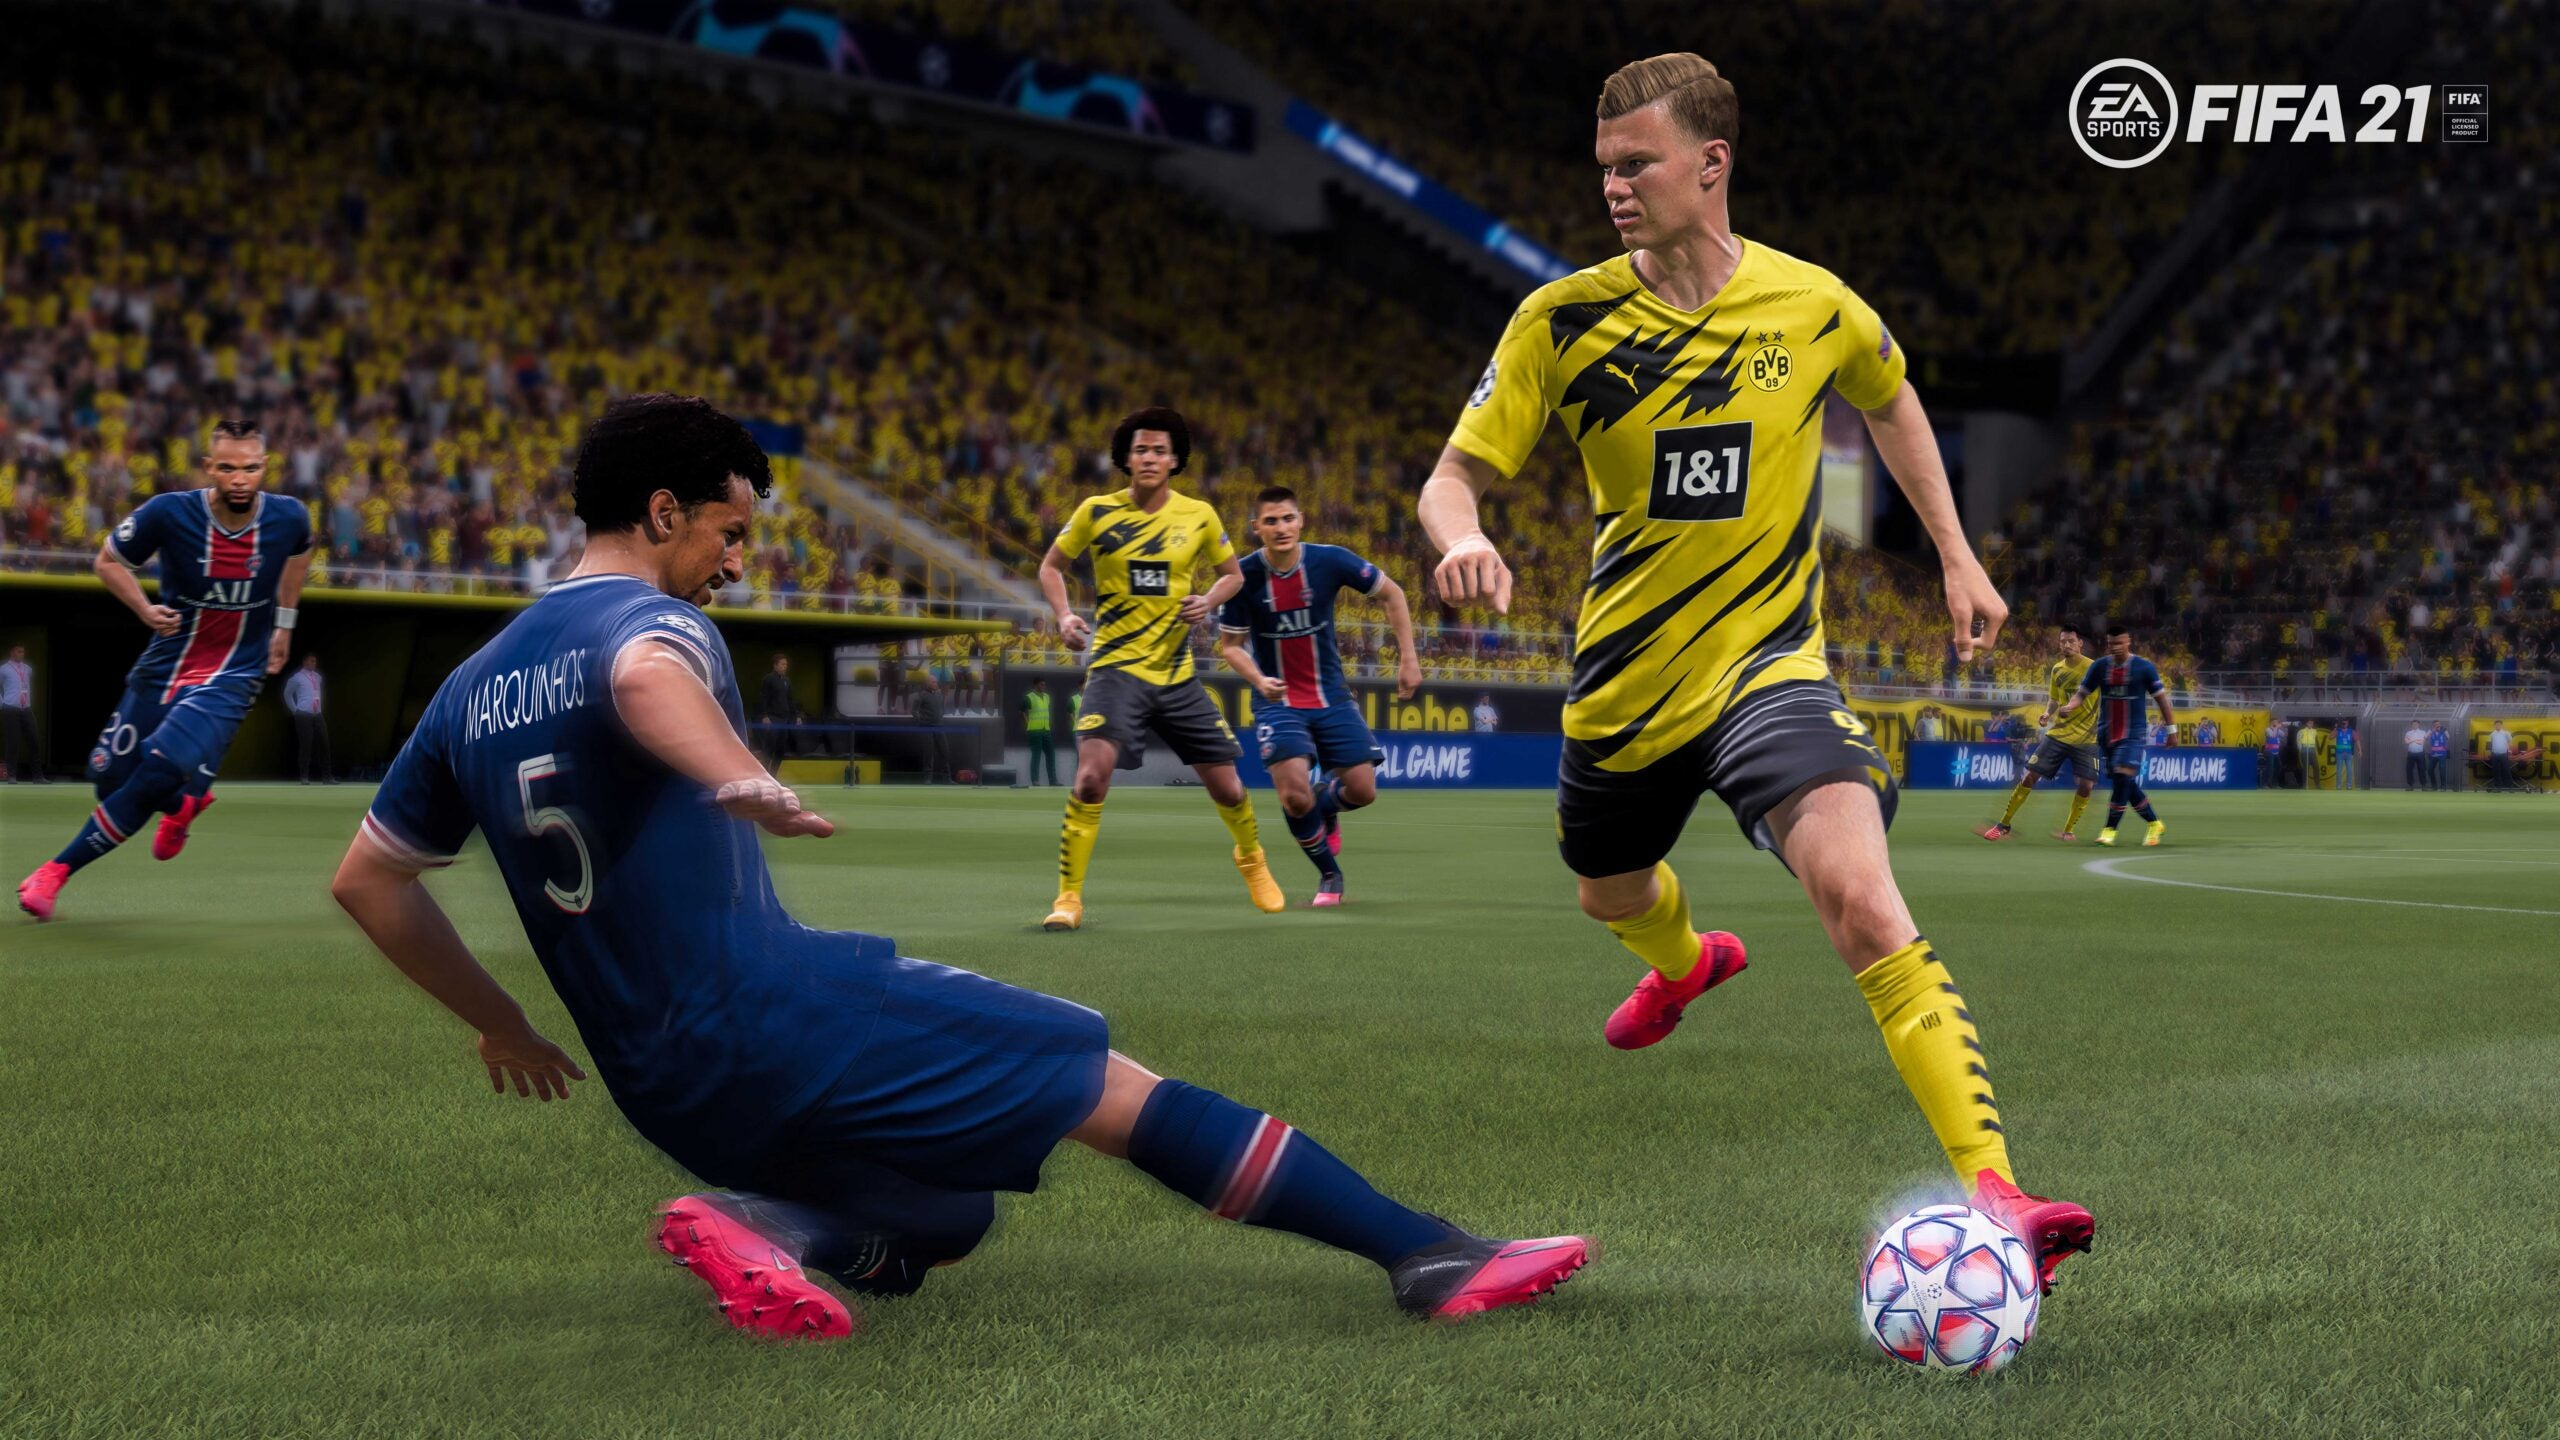 FIFA and Madden NFL 21 hit PS5 and Xbox Series X/S on December 4 | Trusted Reviews